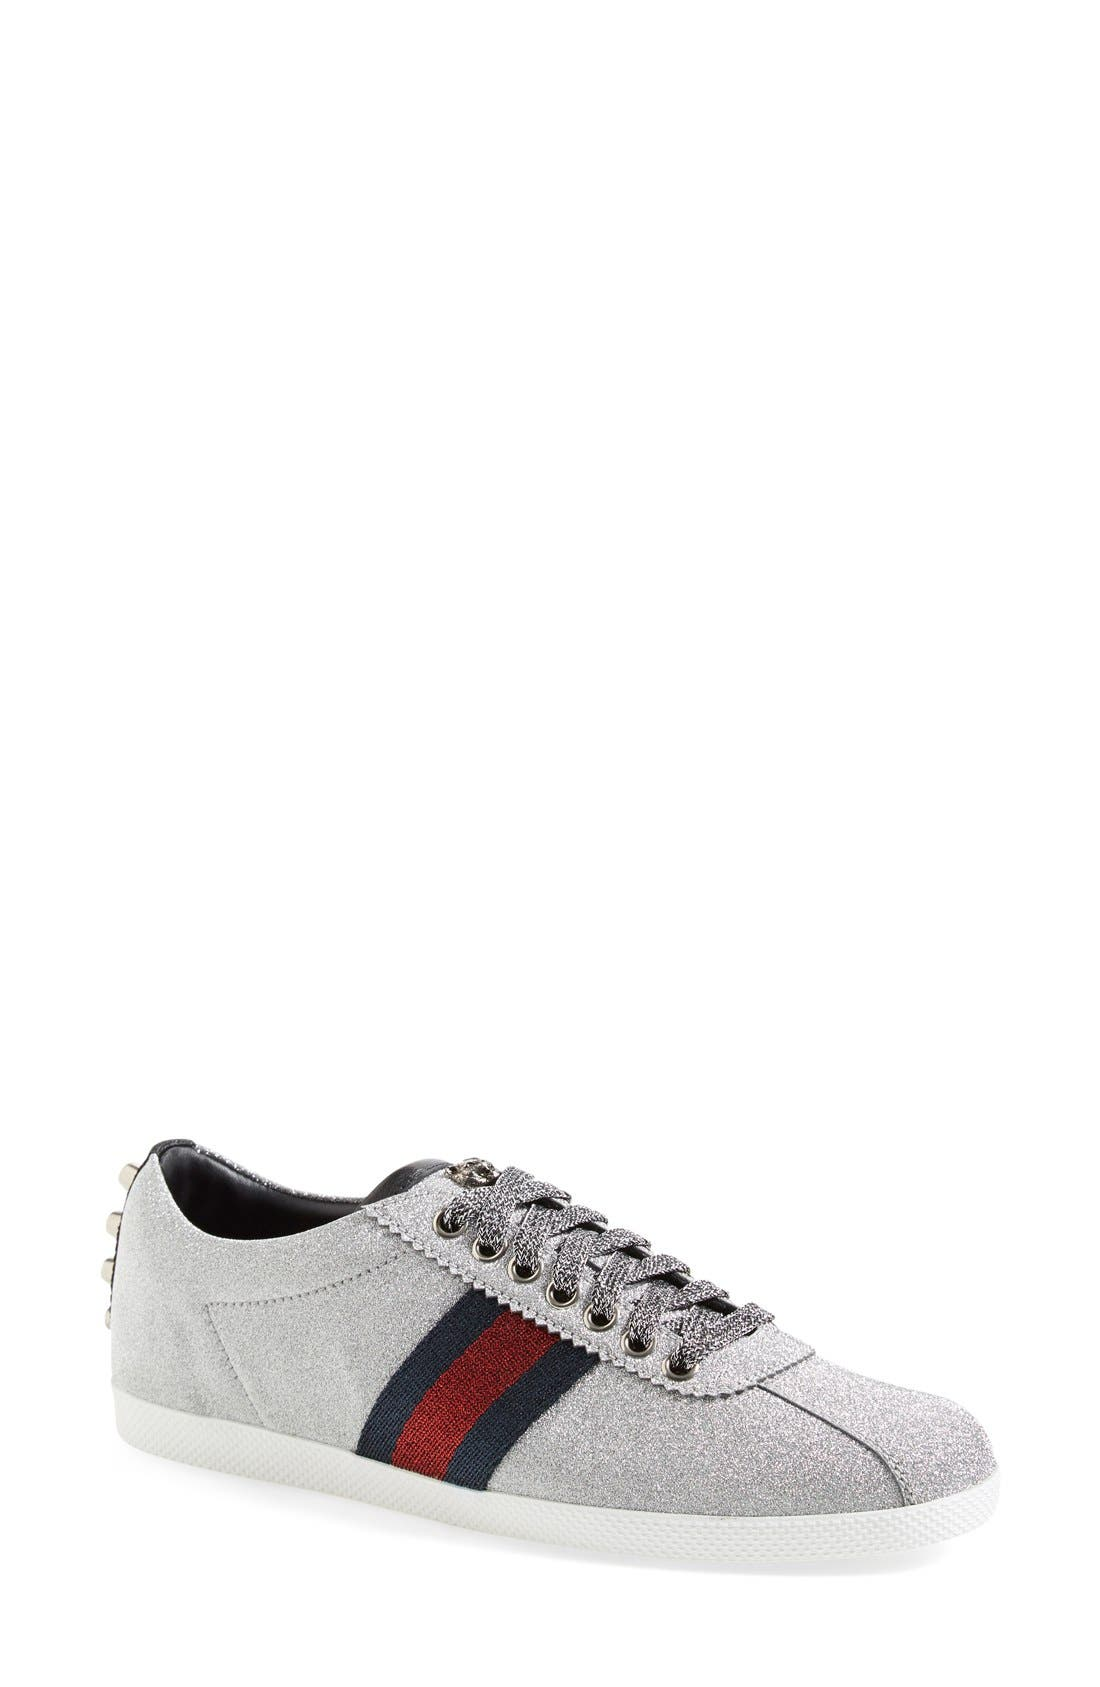 Gucci Lace-Up Sneaker (Women)